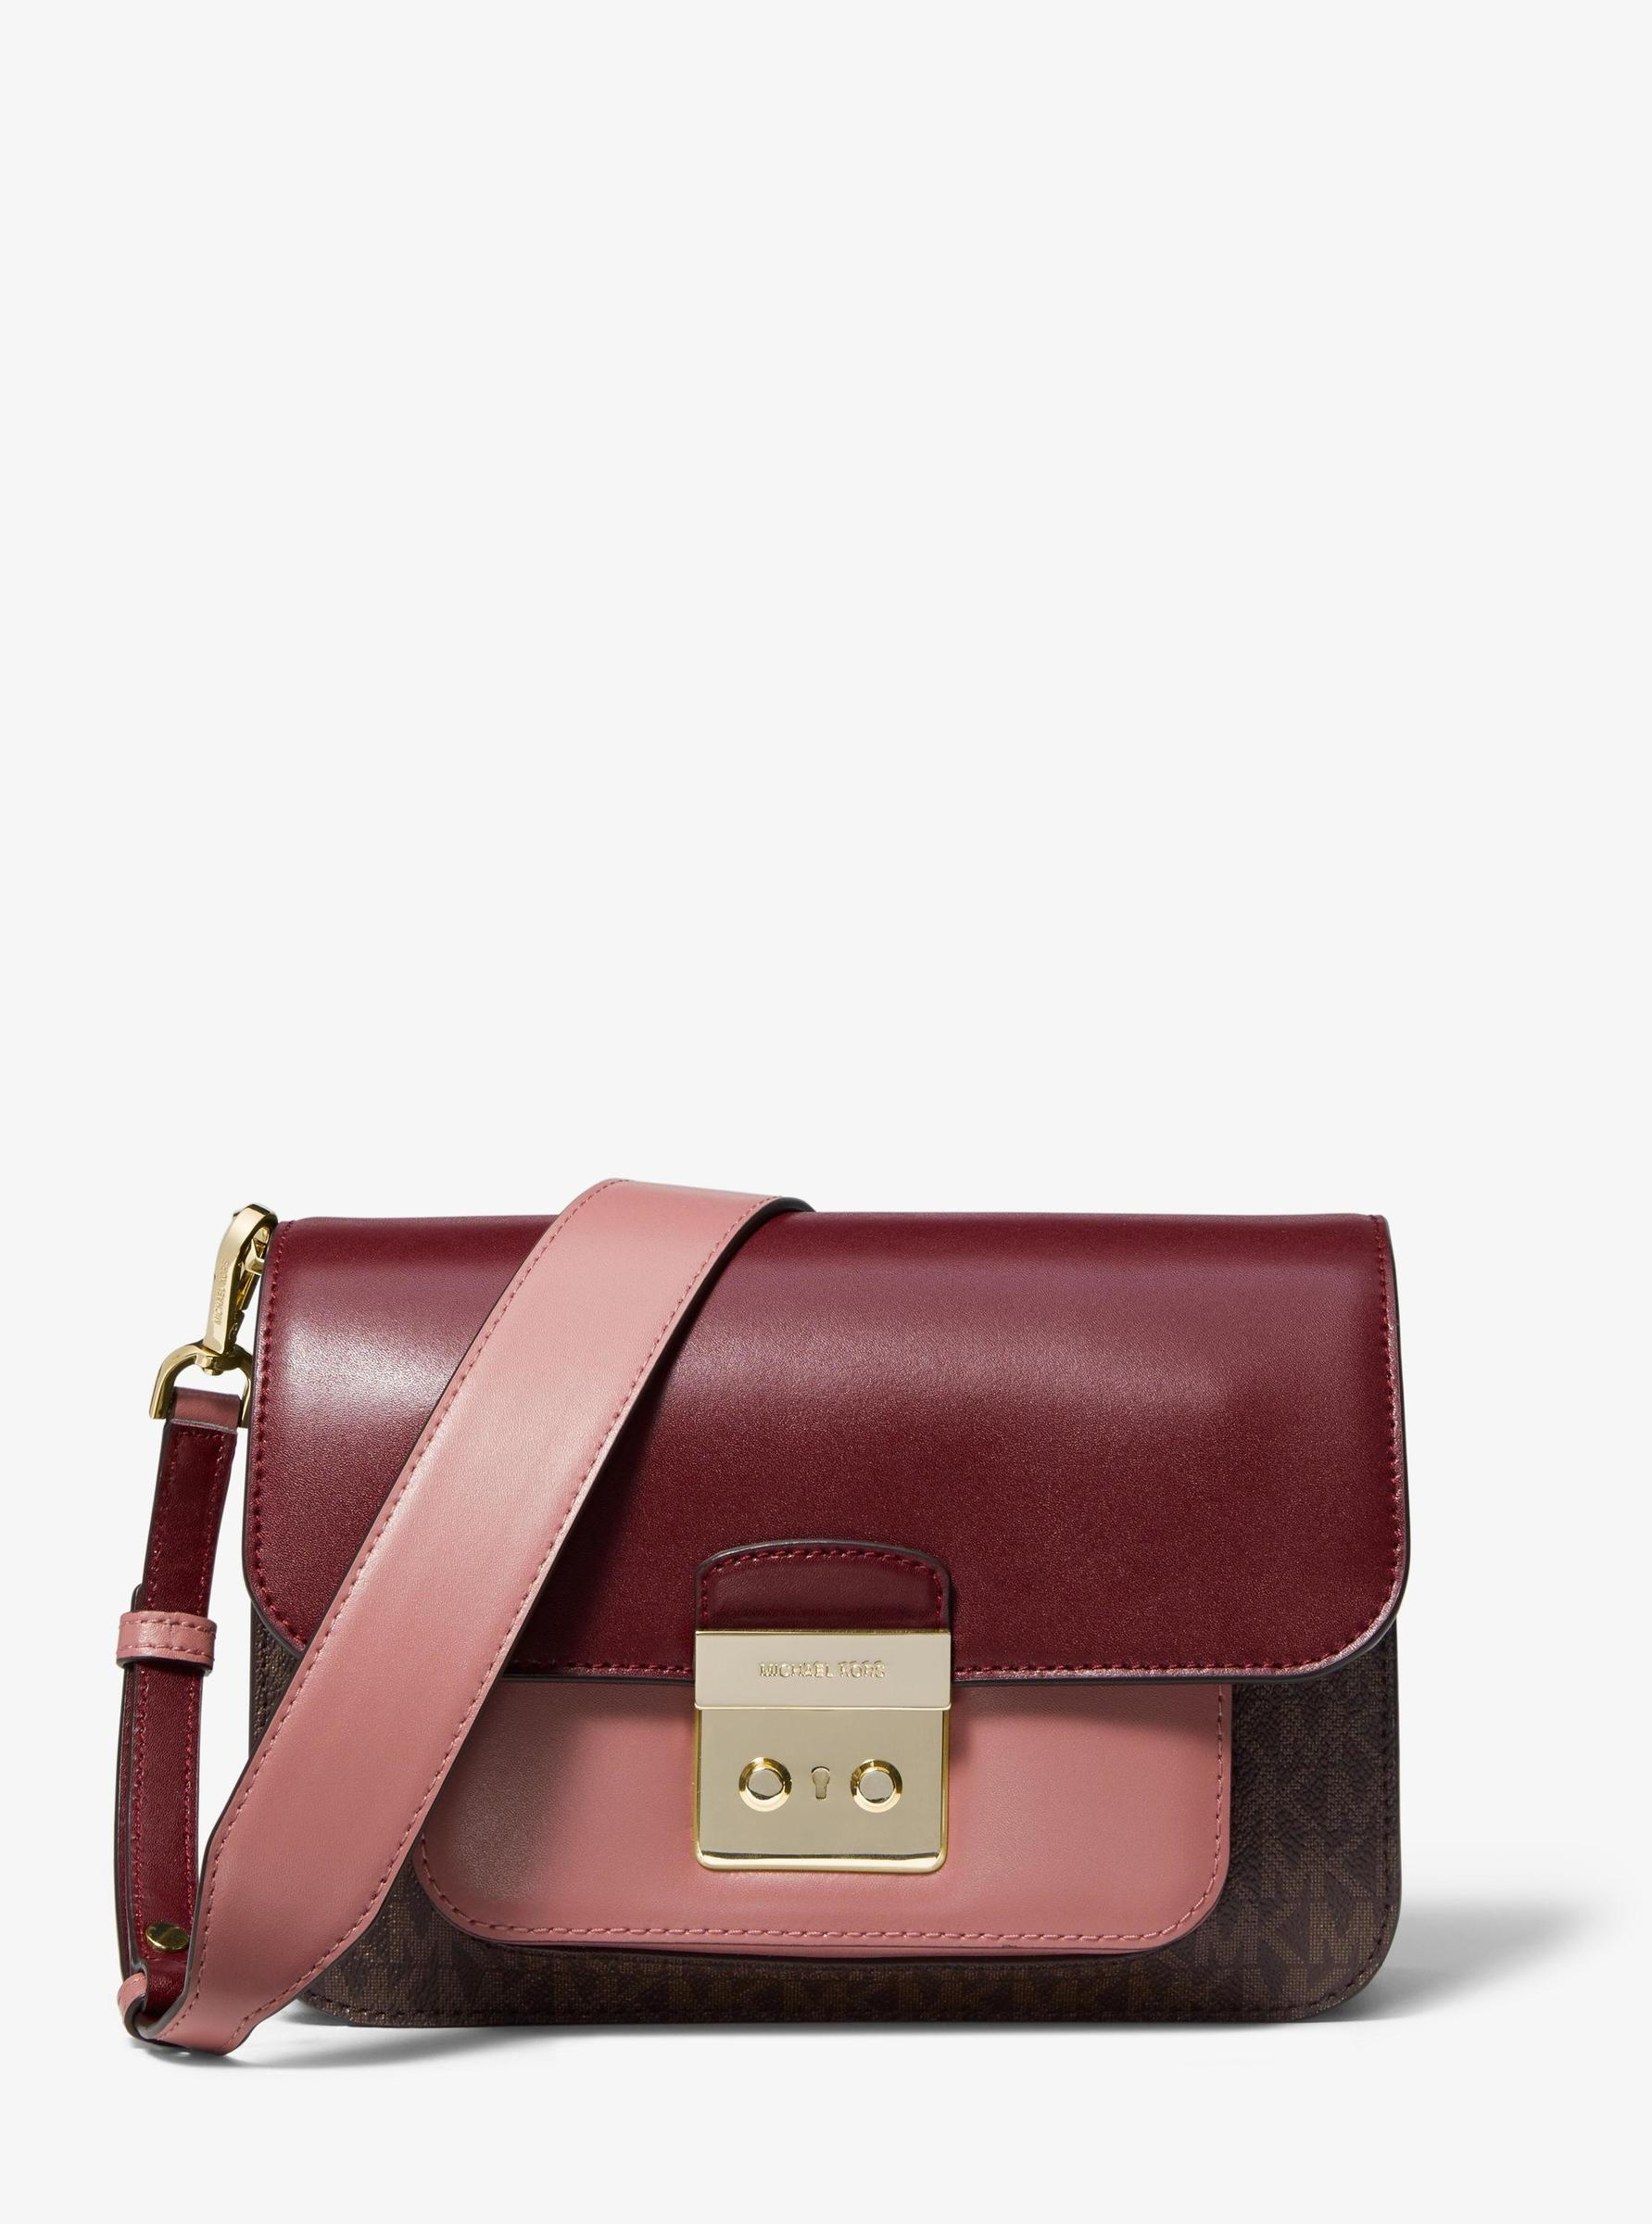 5f25e001b7a2 Home › Michael Kors Sloan Editor Logo and Leather Shoulder Bag. Low of  Stock 15423401429158759_2210X2975.jpg